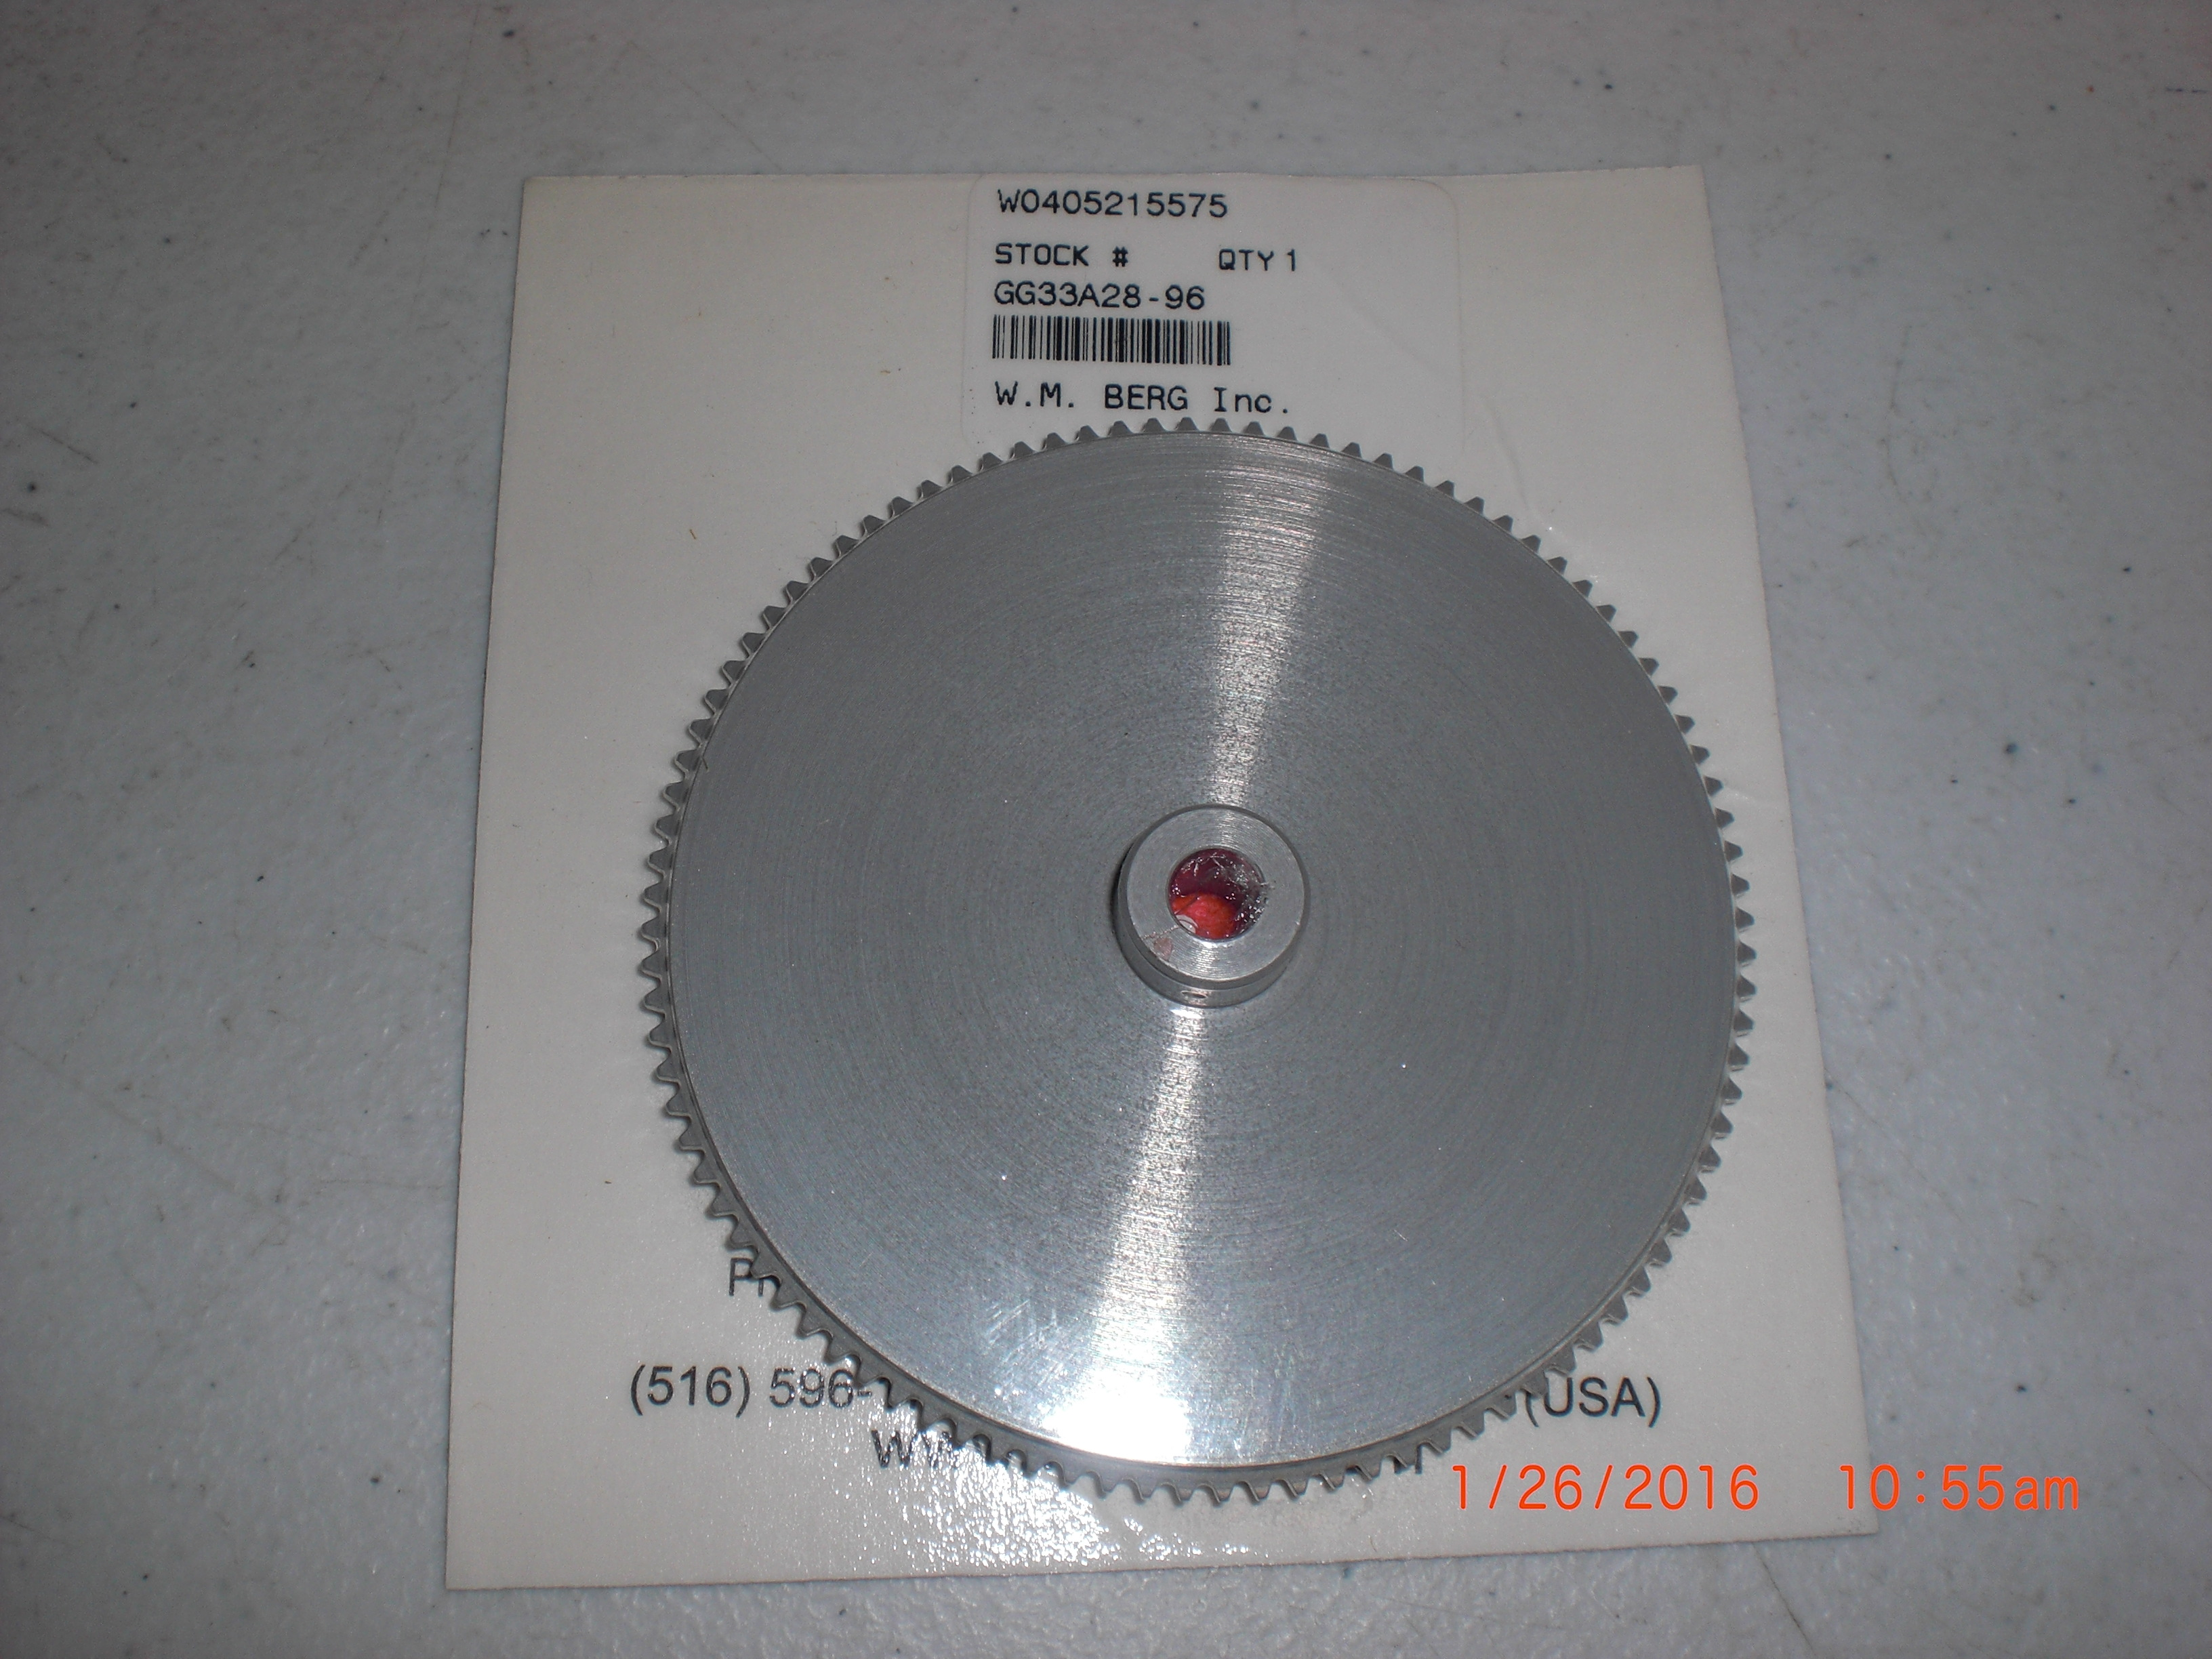 Pulley BERG GG33A28-96 Sprocket, 96 Teeth  AL Bore 0.2500 inch (6.35 mm) Hub Diameter 0.5000 inch (12.7 mm) Pitch Subminiature (